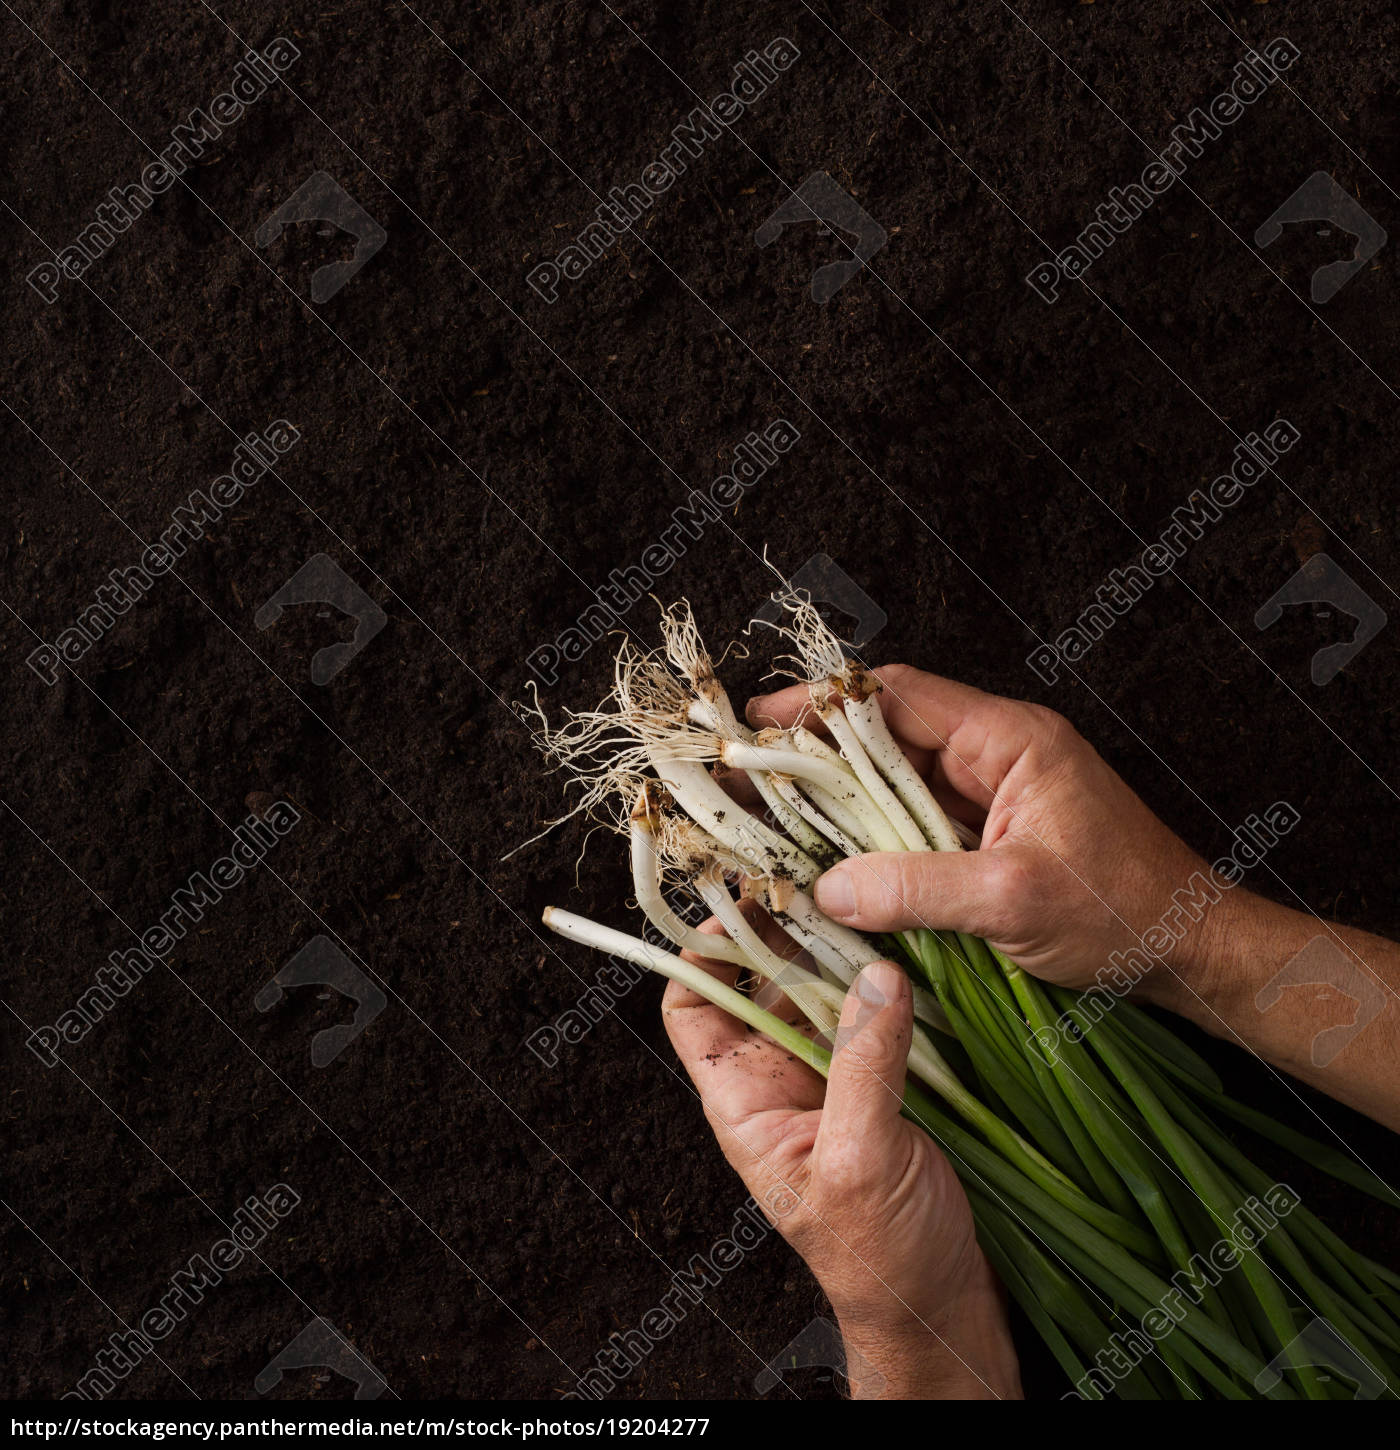 hands, holding, onion, with, green, leaves - 19204277